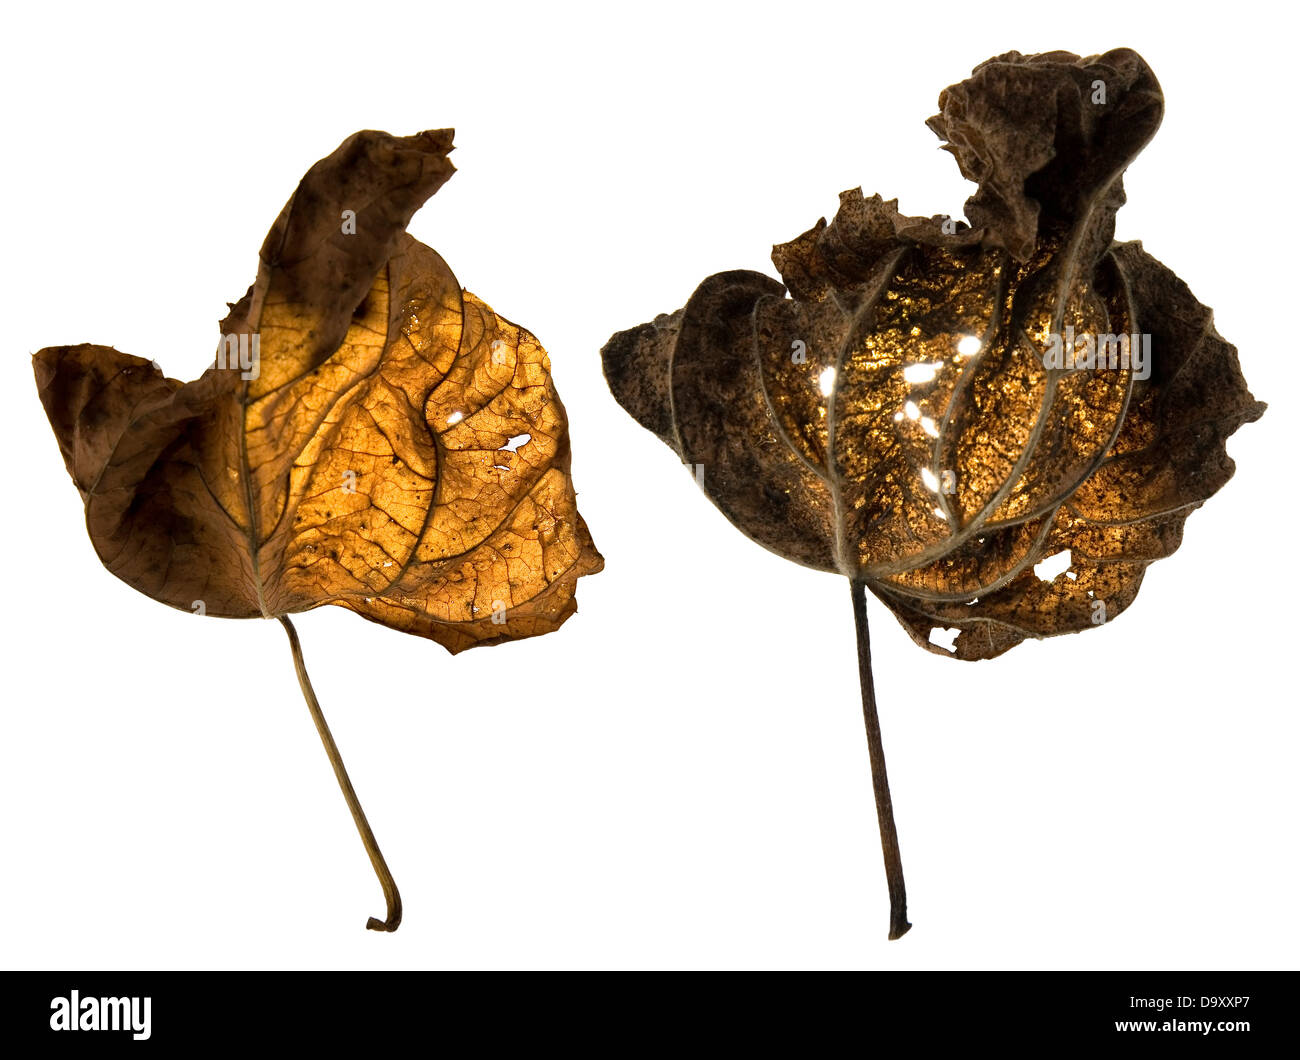 Dead leaves illuminated from behind - Stock Image